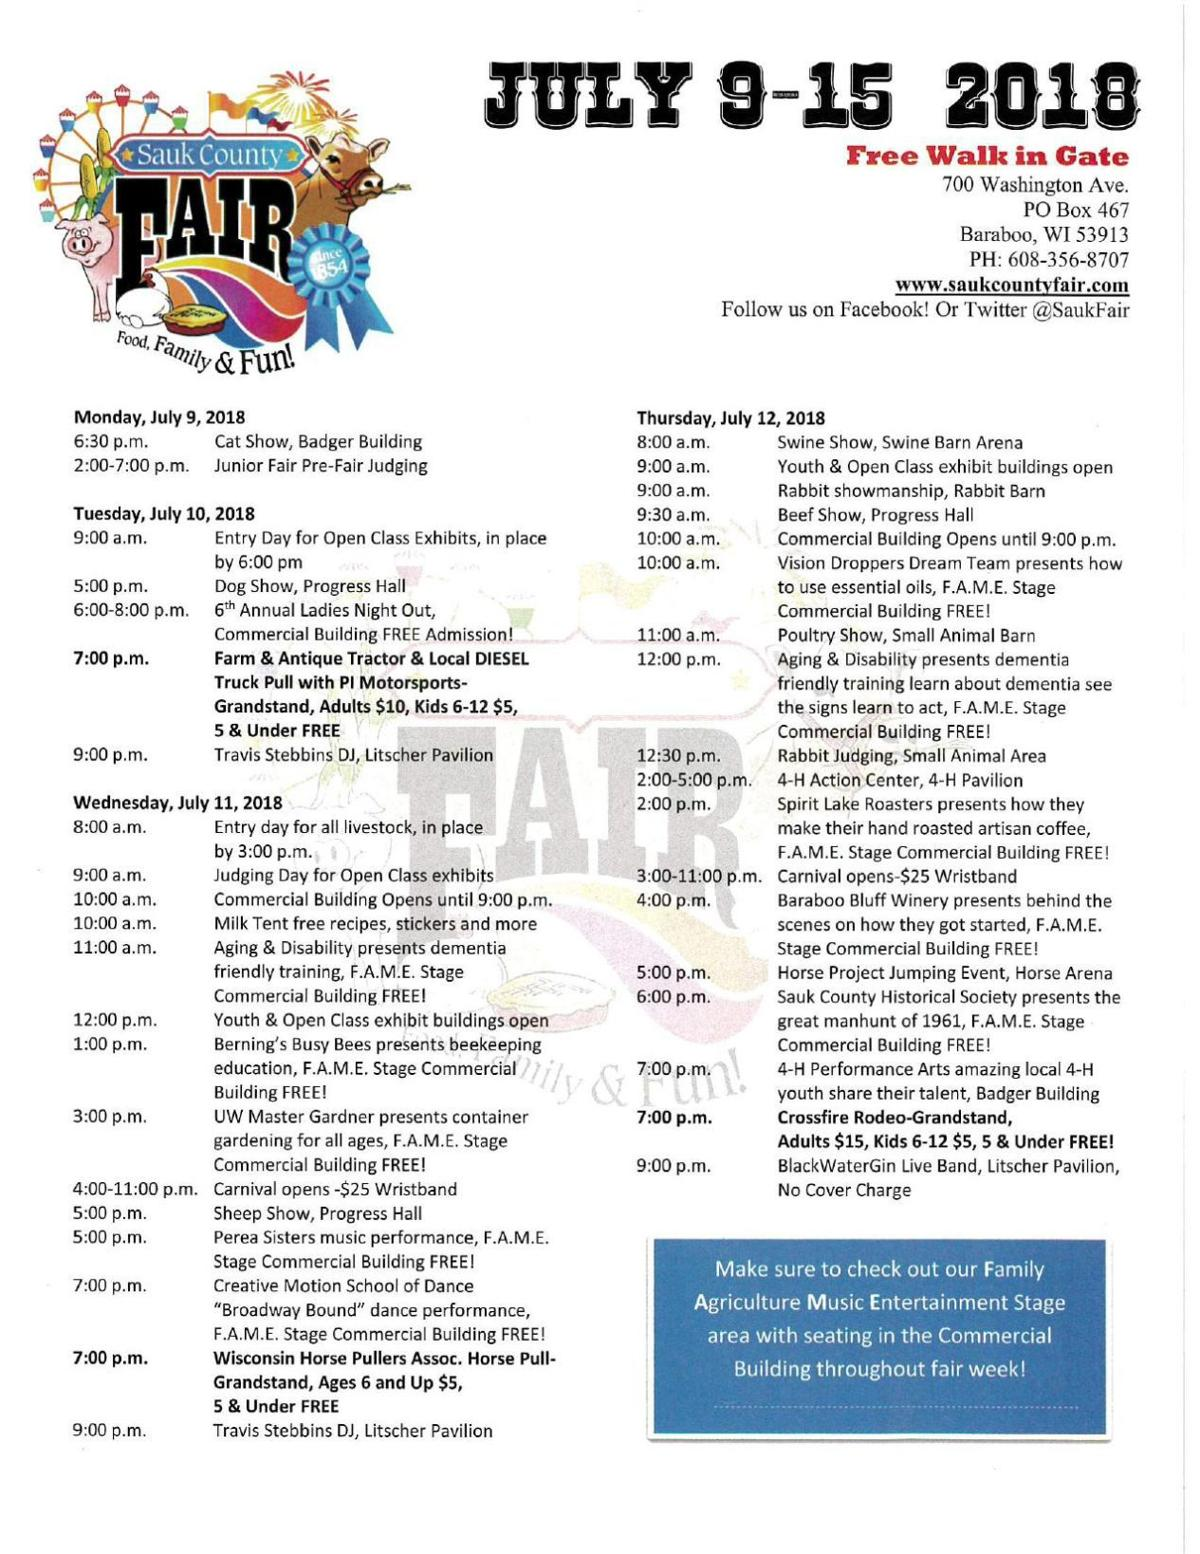 Sauk County Fair schedule